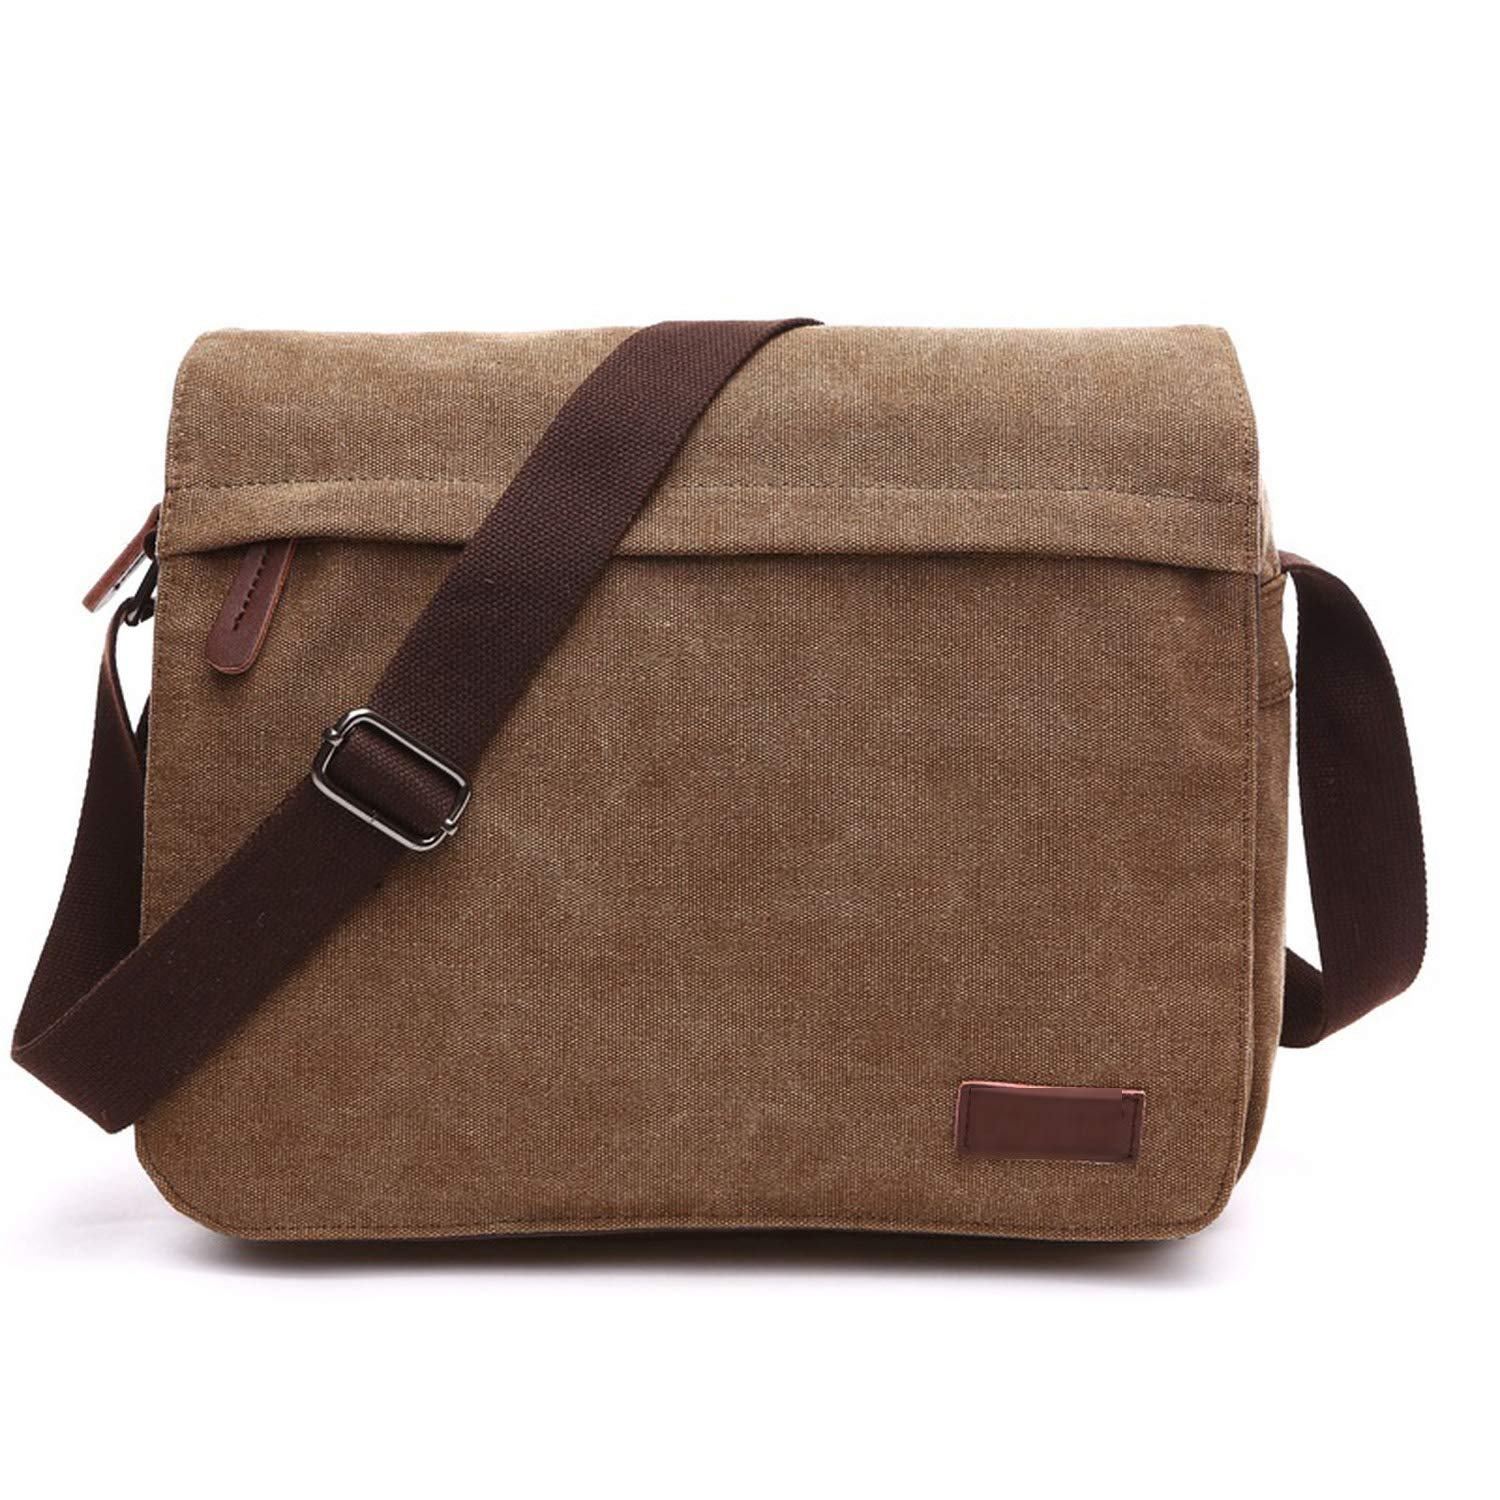 Men Canvas Bag Messenger Bag Brand Business Casual Travel Shoulder Bag Men Crossbody Bag Male